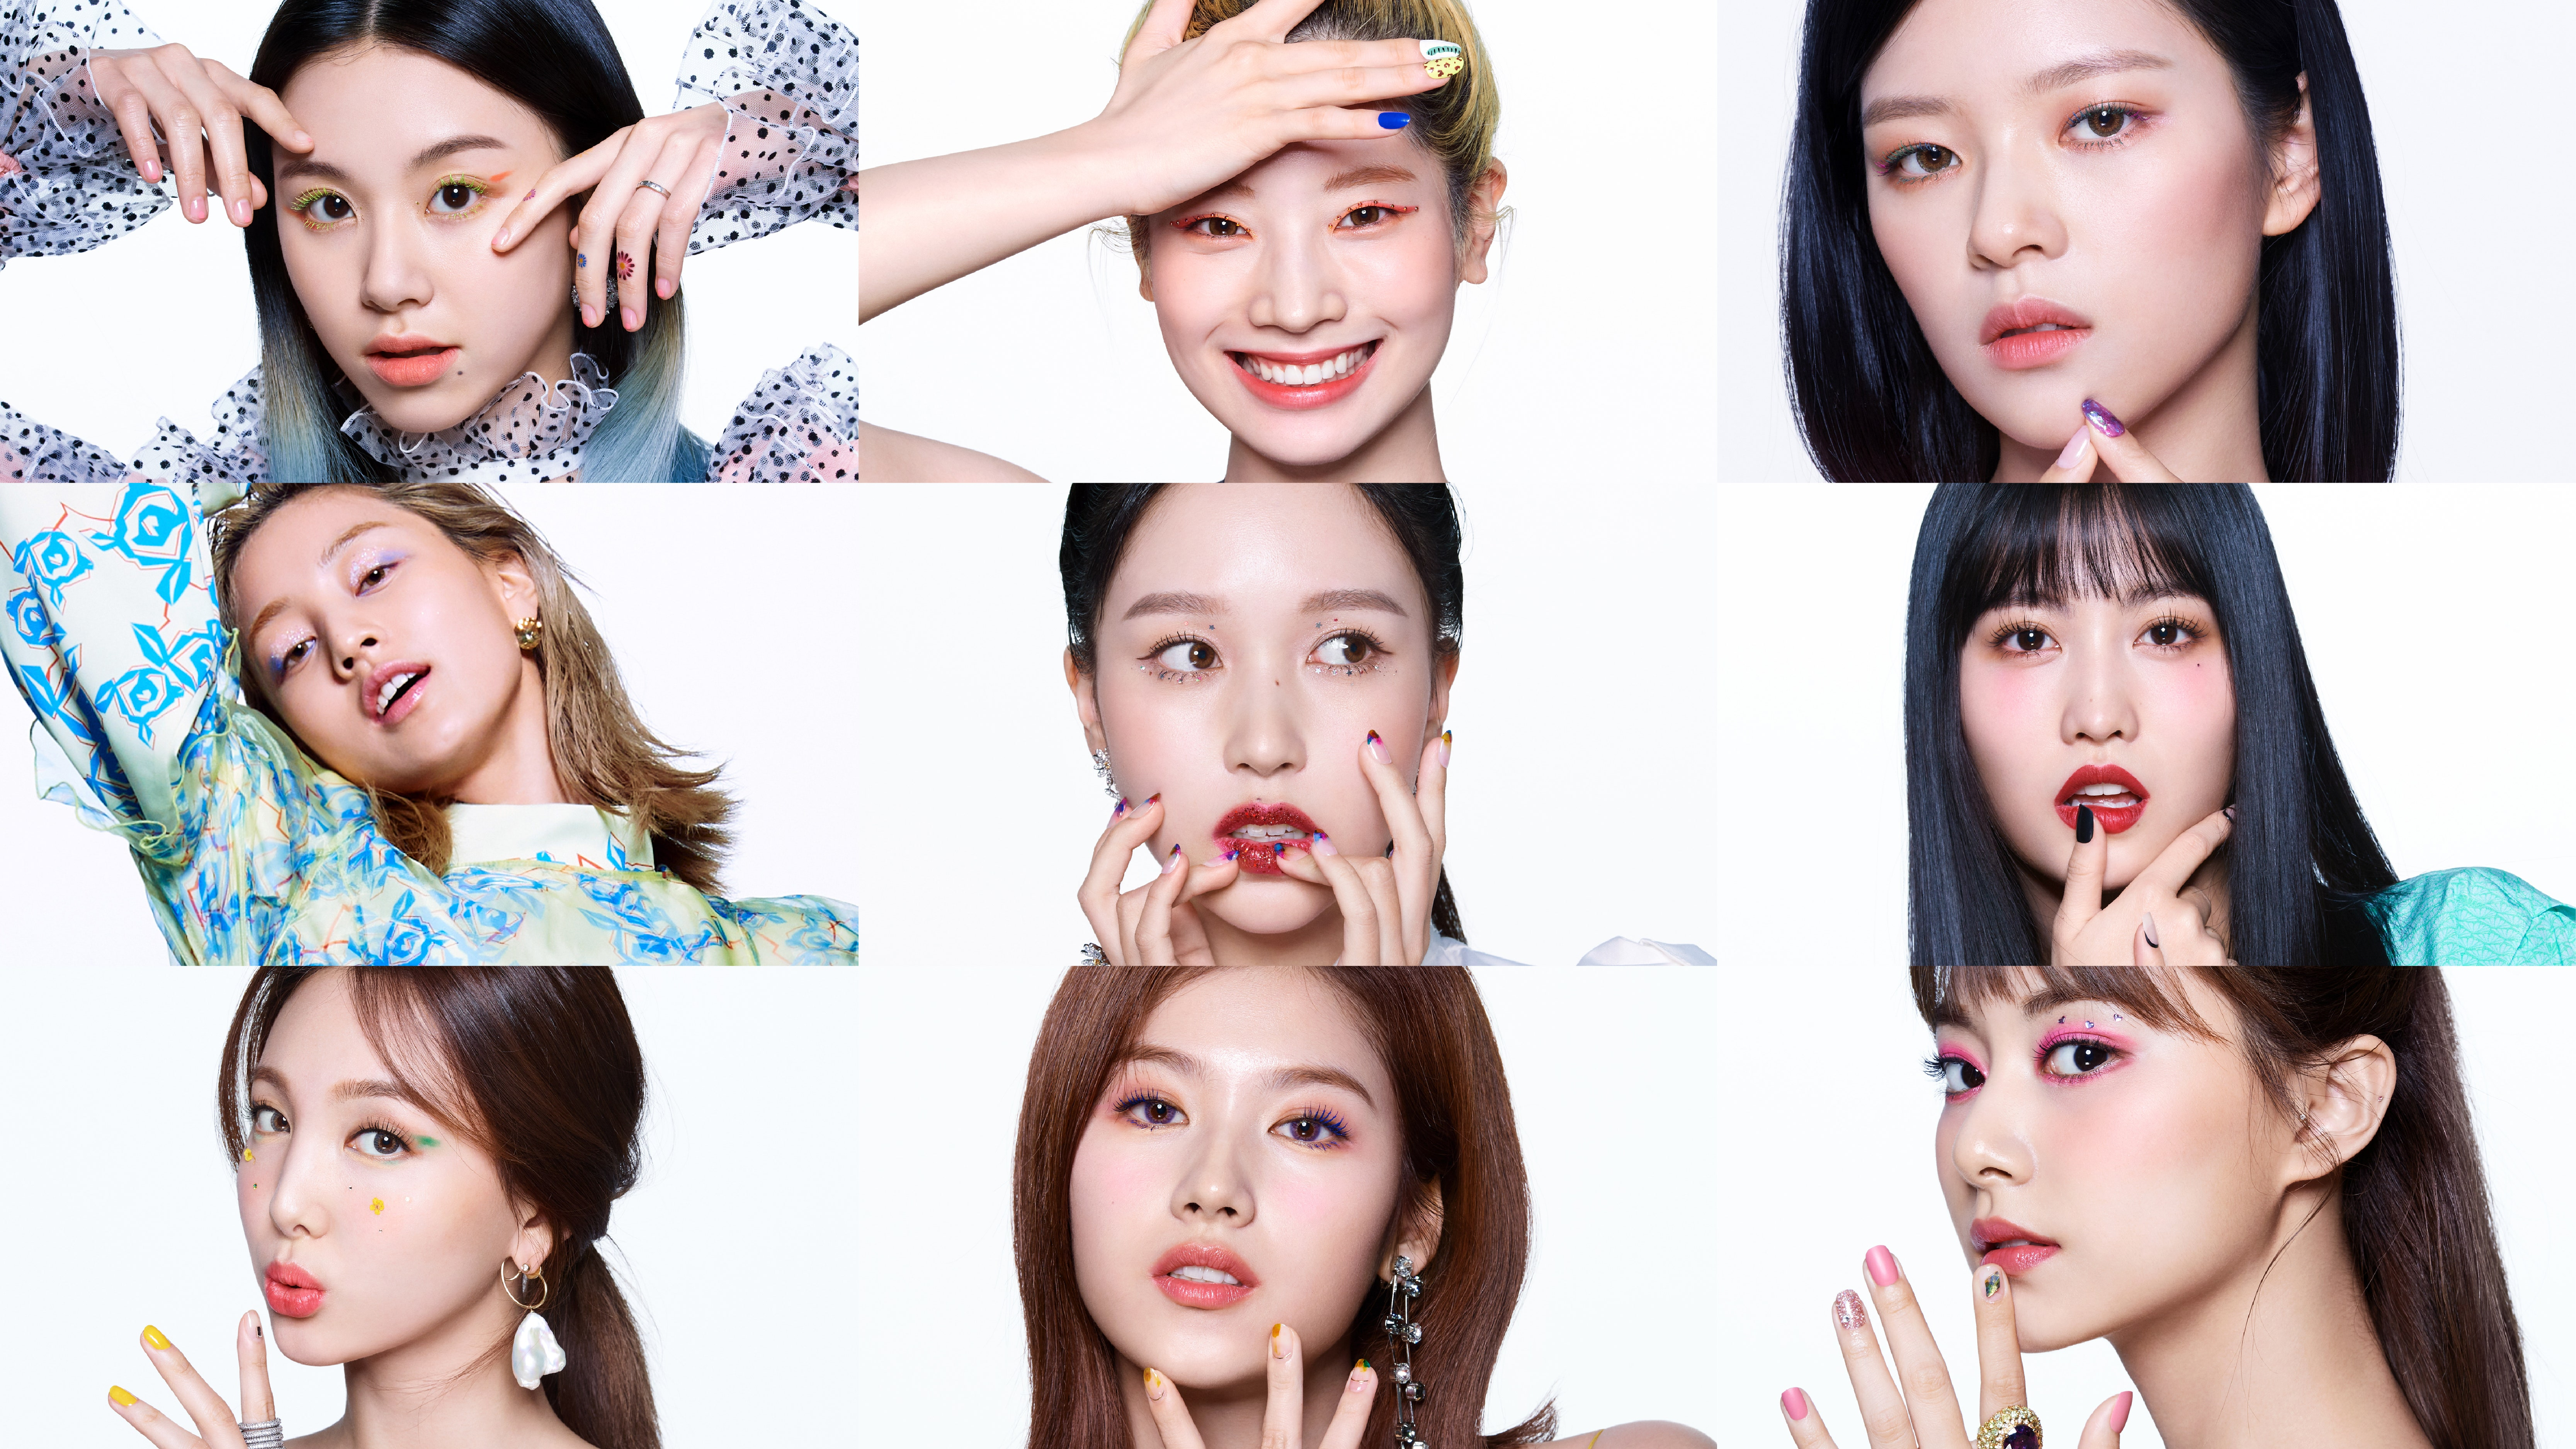 Twice Allure May 2020 Photos (HR)